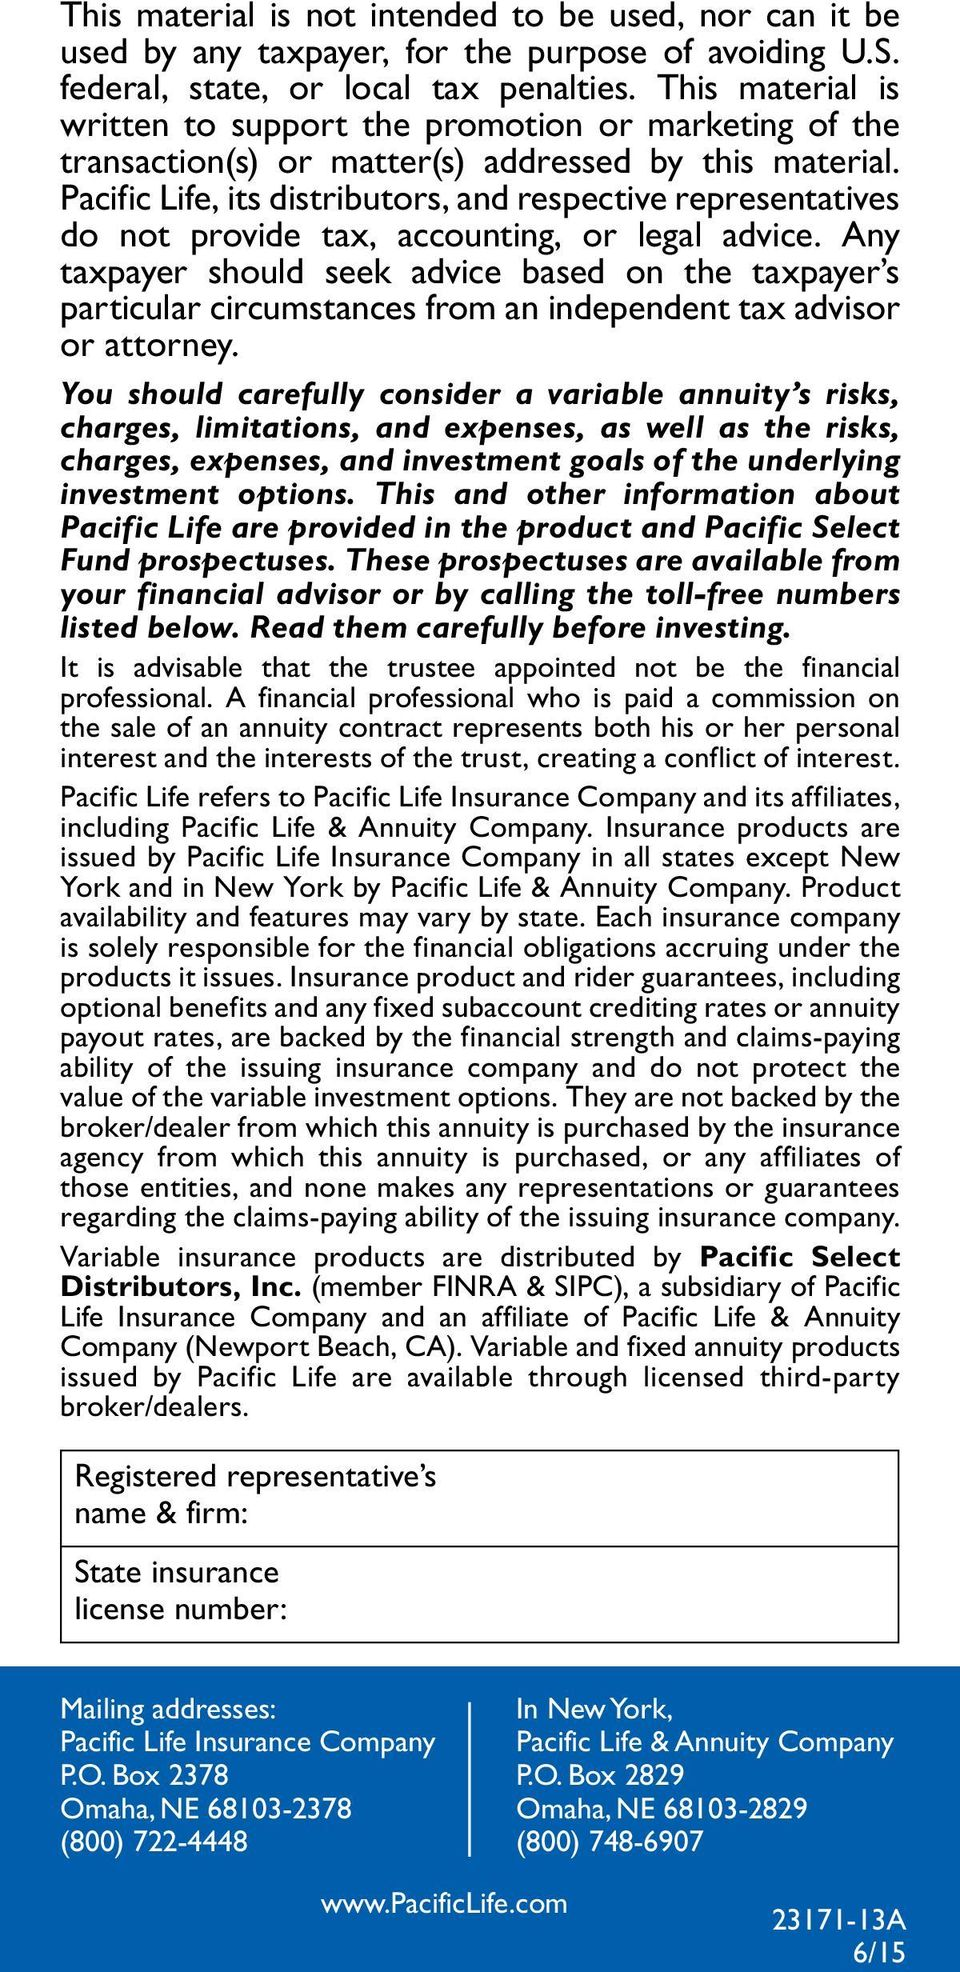 Pacific Life, its distributors, and respective representatives do not provide tax, accounting, or legal advice.